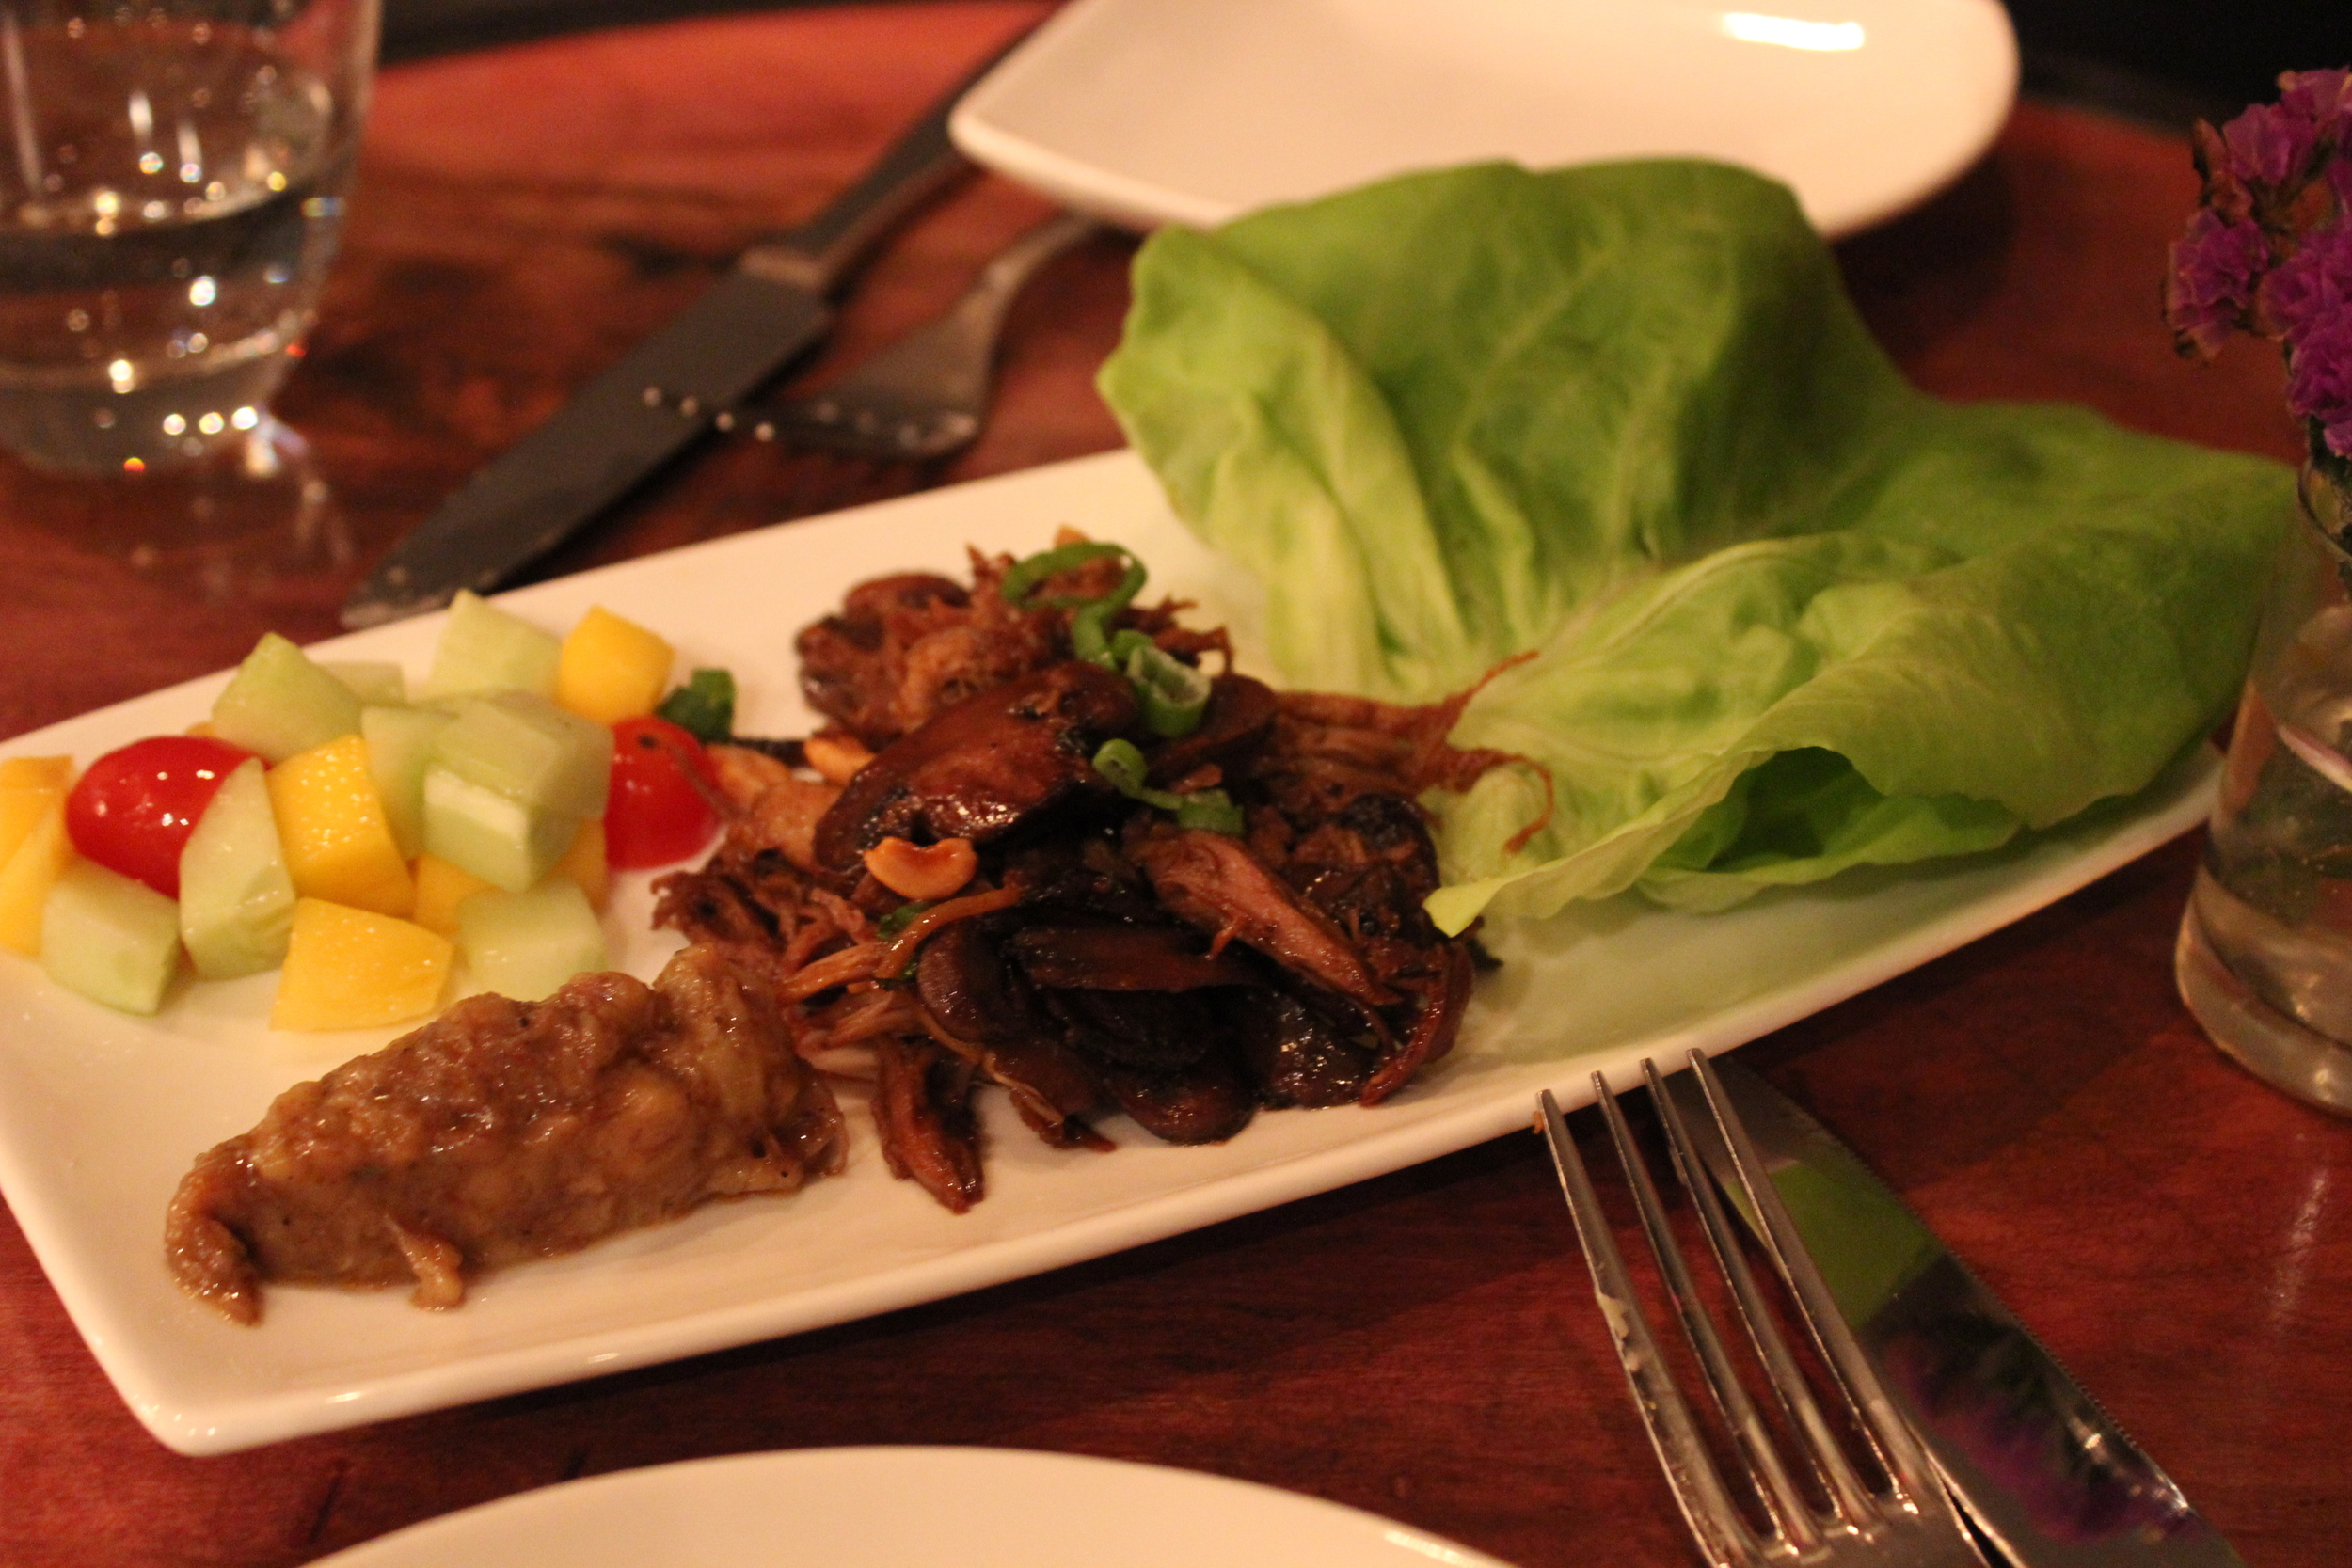 Course 4: Braised Duck Lettuce Wraps, Mushrooms, Picadillo, Raisins, Peanuts, Roasted Banana